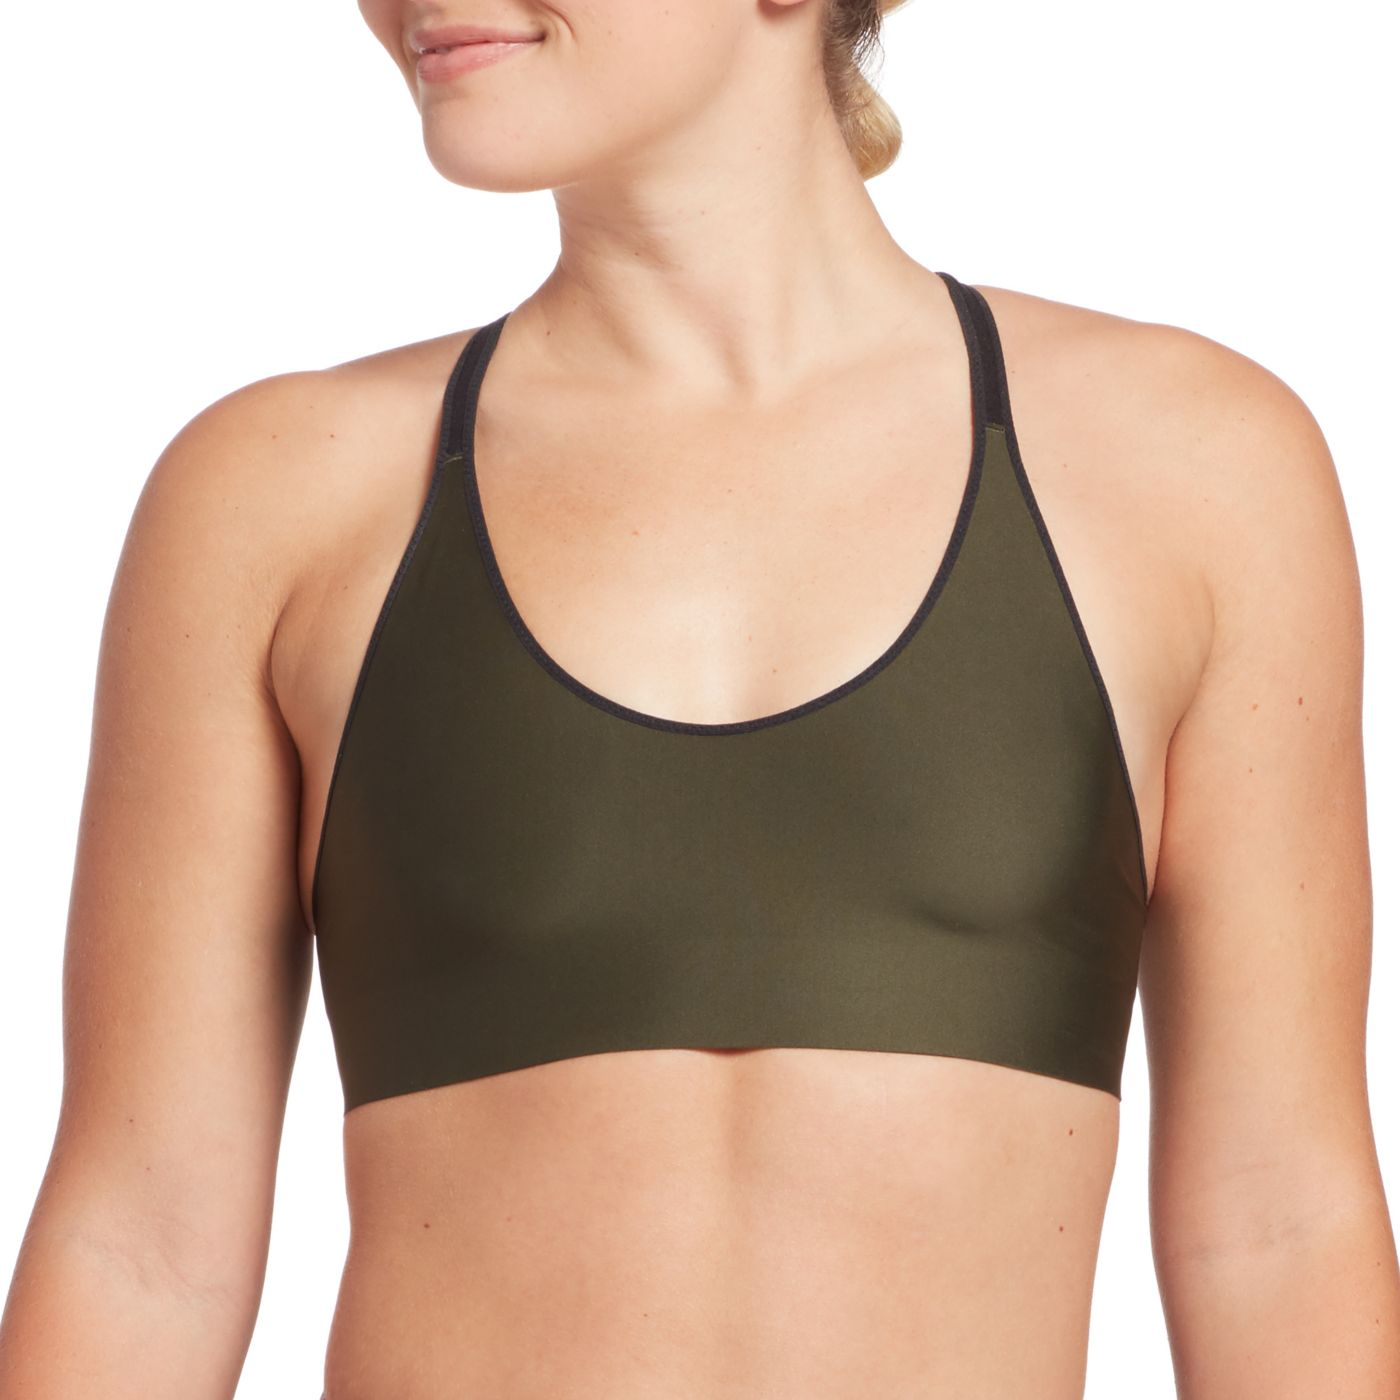 DSG Women's Racerback Compression Sports Bra